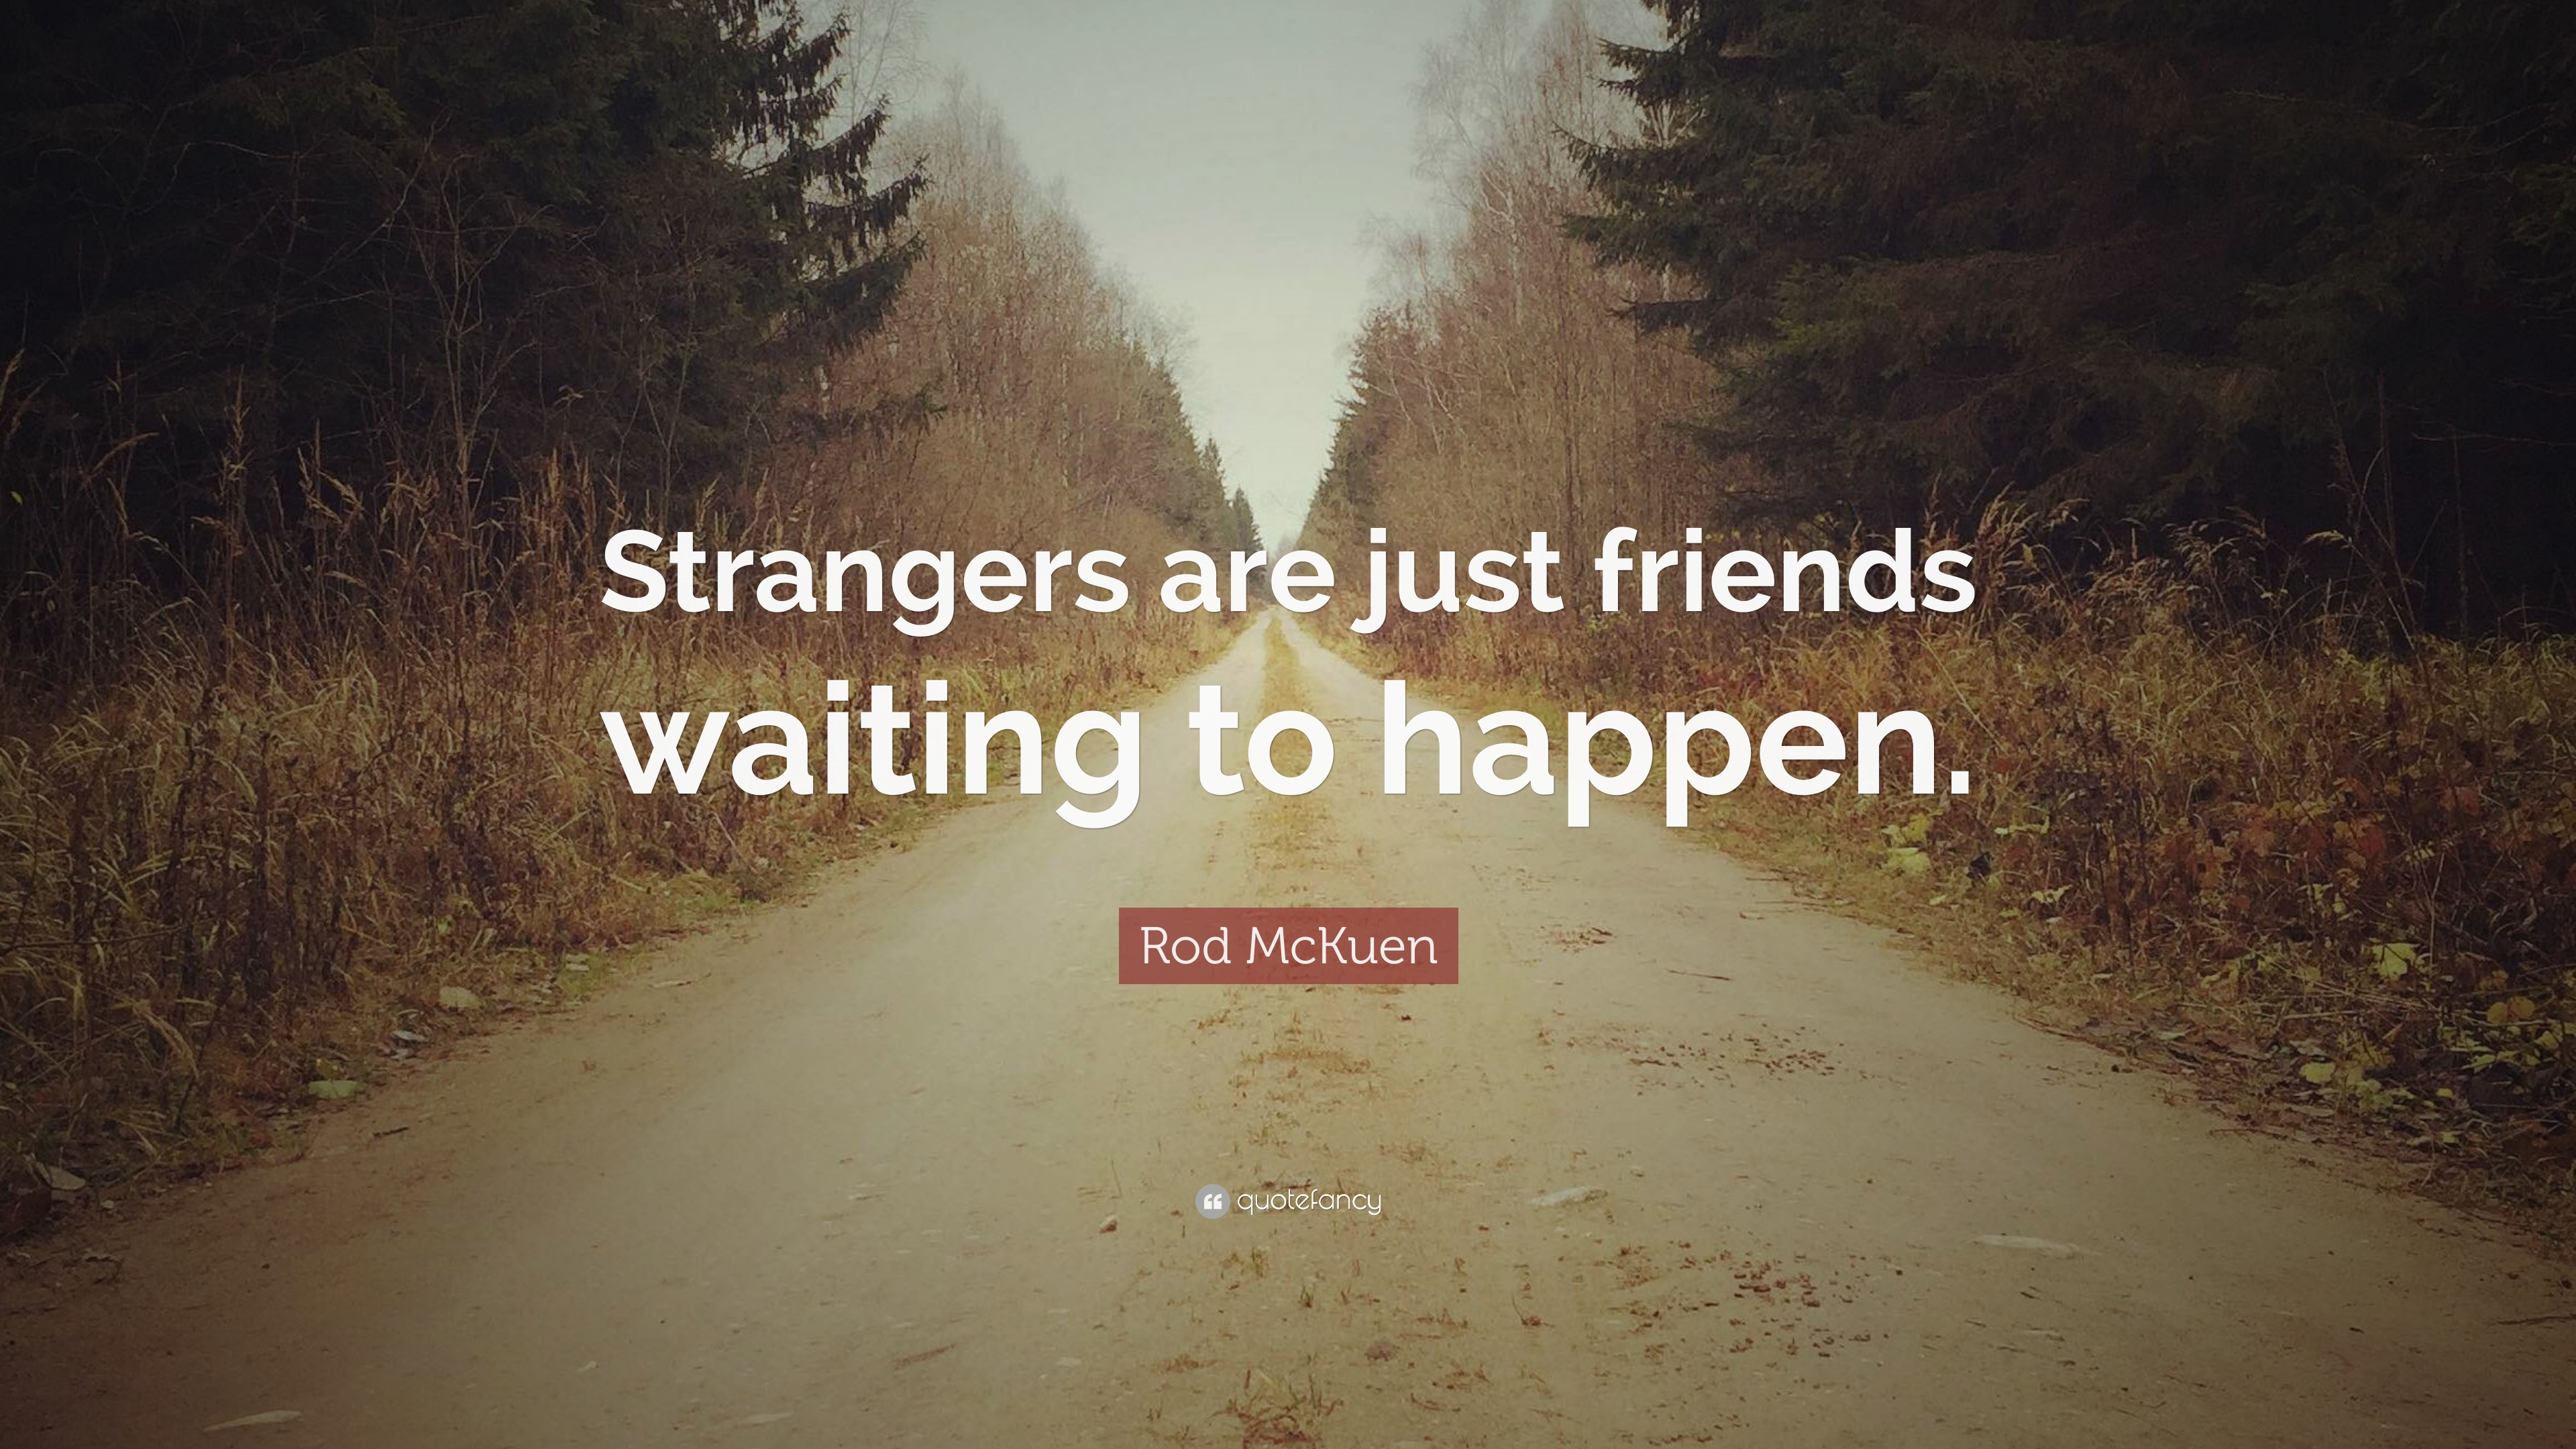 Strangers are just friends waiting to happen